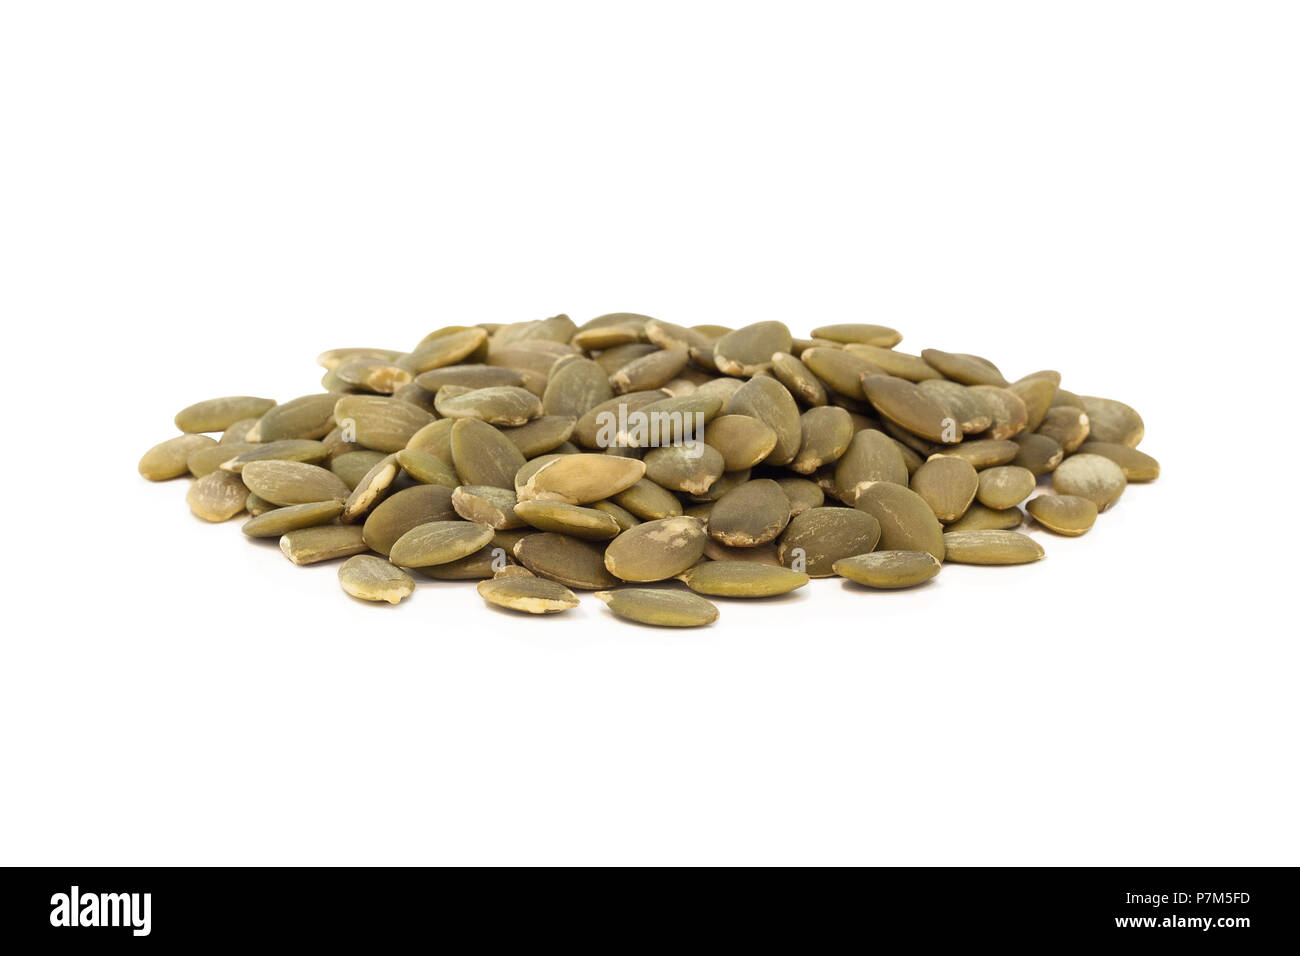 A stack of pumpkin seeds isolated on white background. Stock Photo